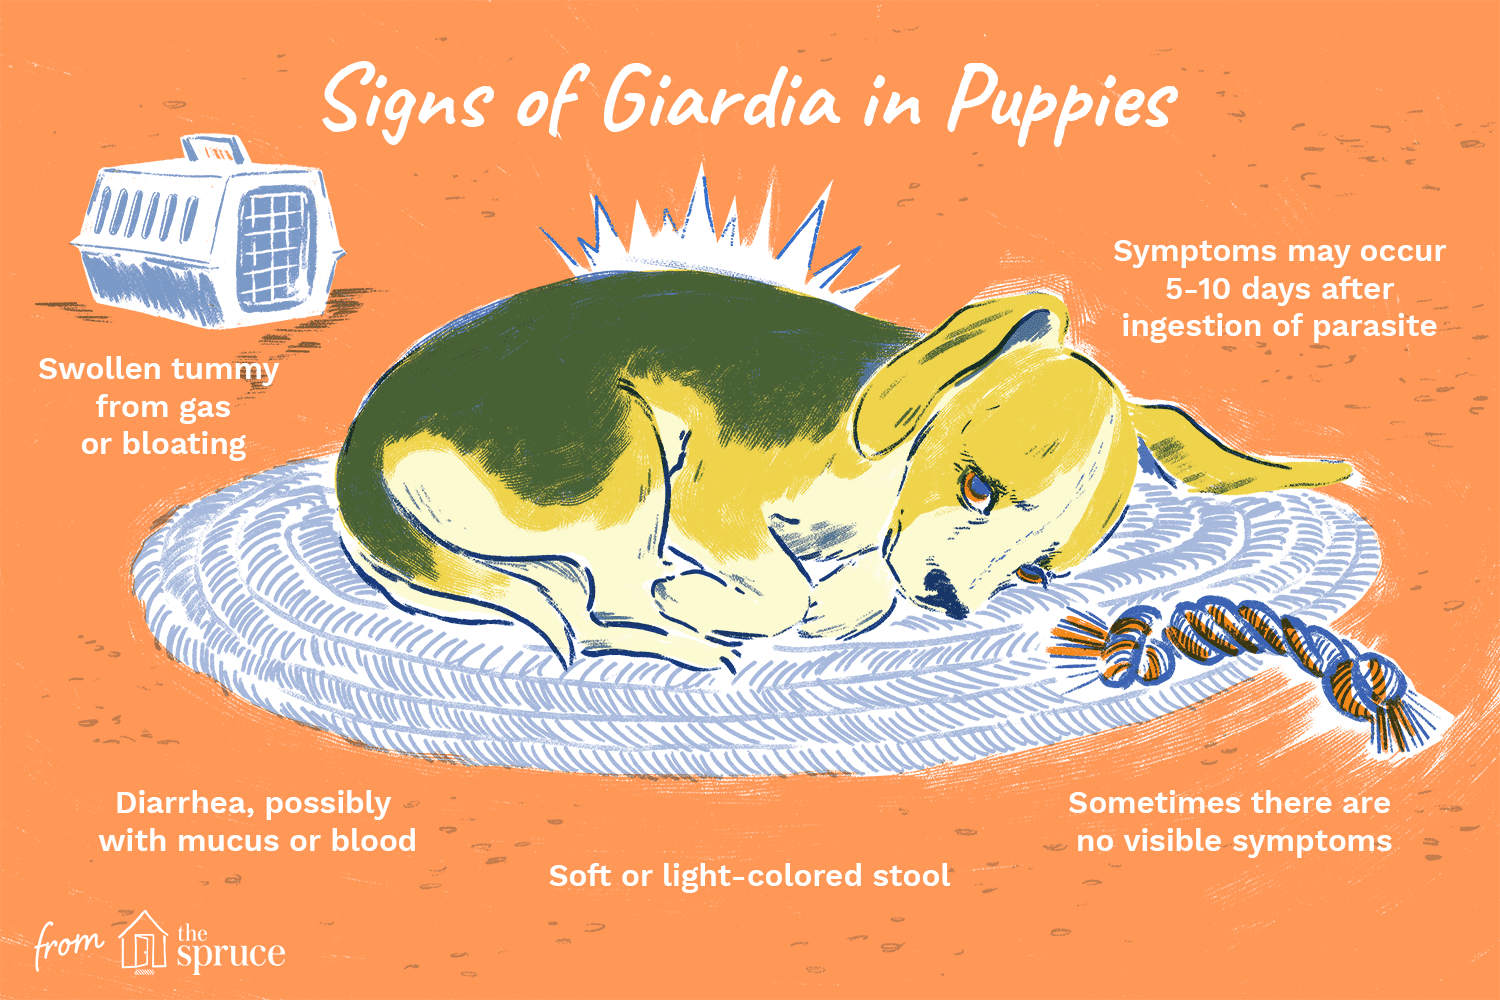 Giardia parasite symptoms in humans. Giardia teszt Can giardia cause weight loss